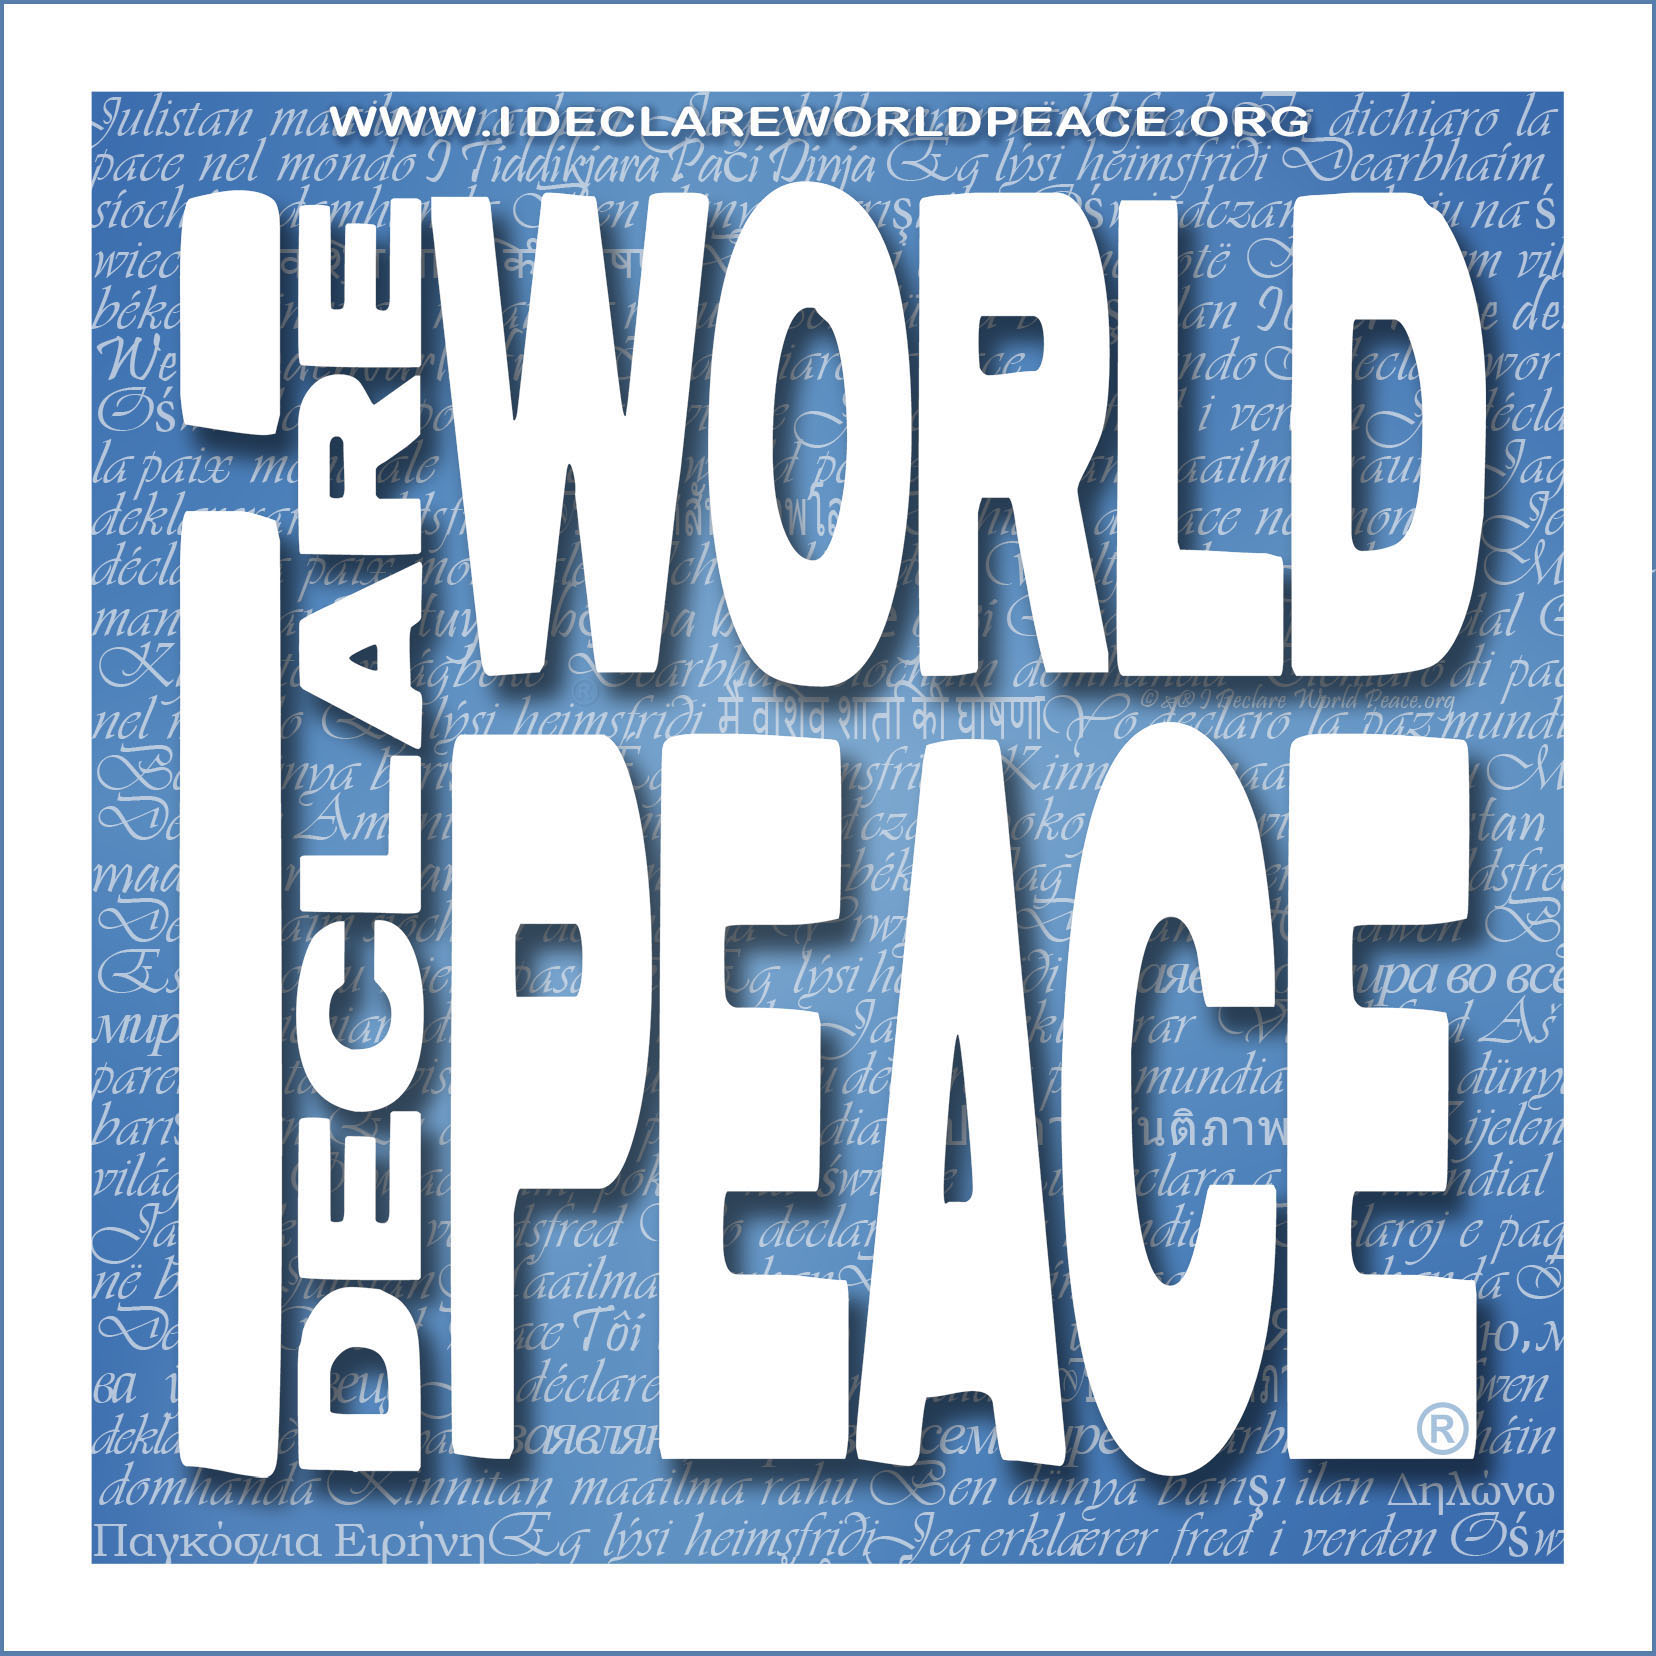 how to achieve world peace oration